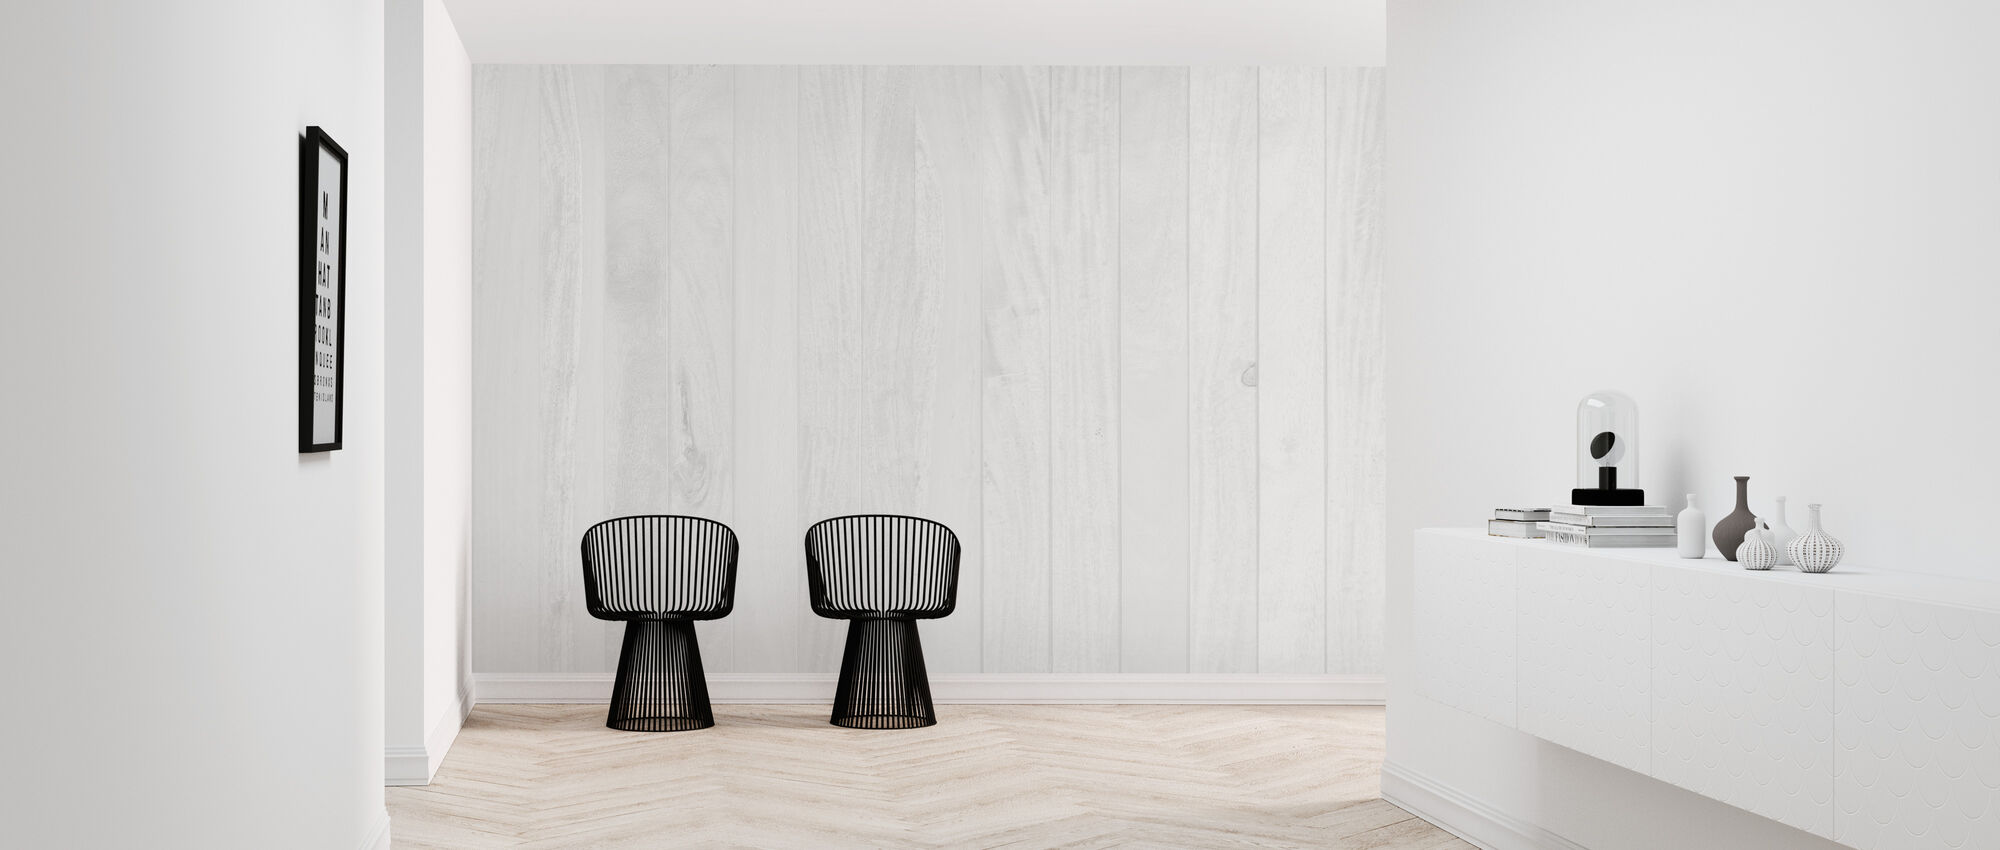 White Wooden Wall - Wallpaper - Hallway